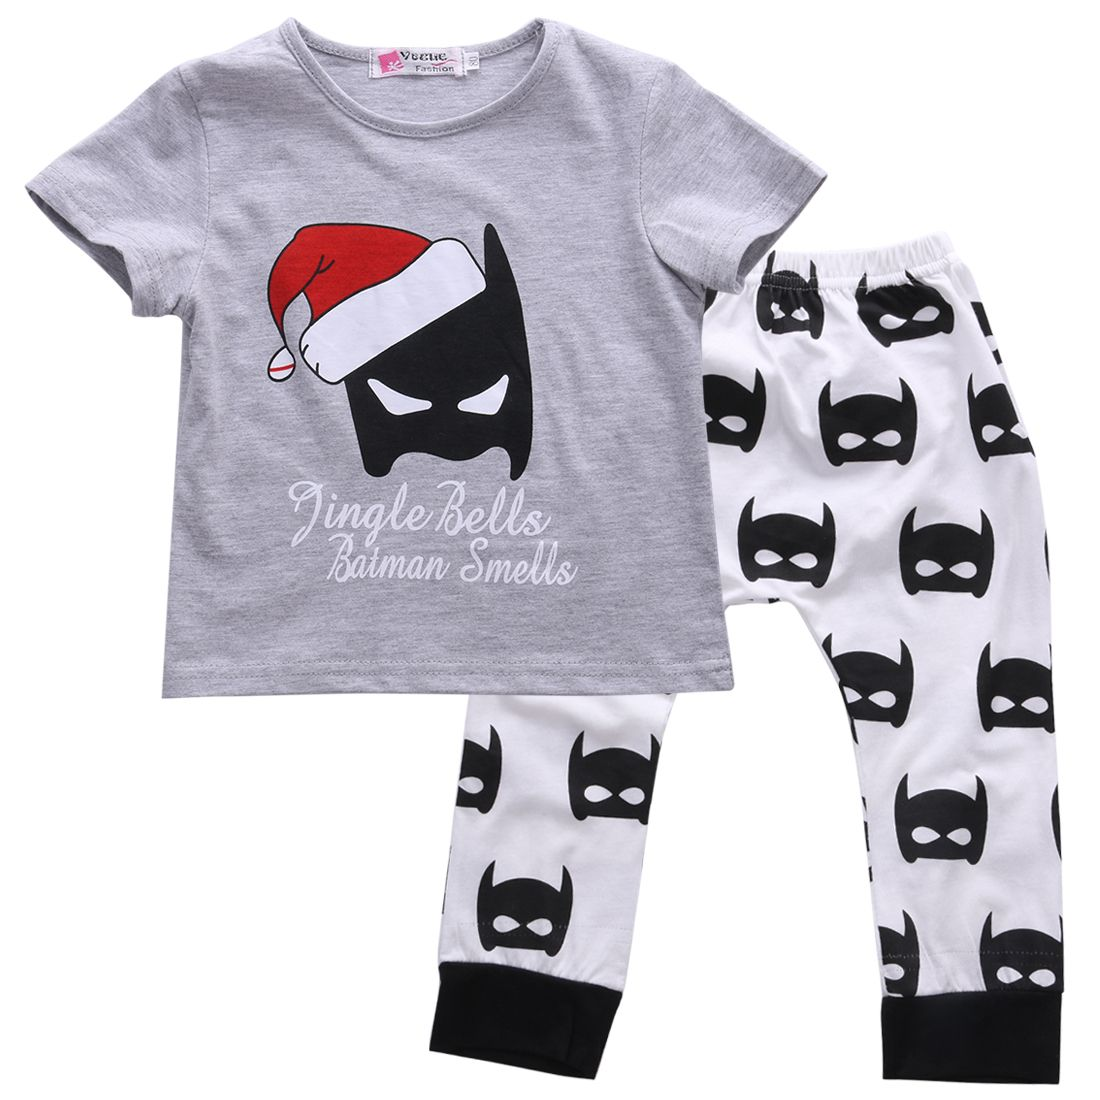 Christmas Gift Toddler Baby Boy Girl Xmas T-Shirt Tops Long Pants Outfit Clothes